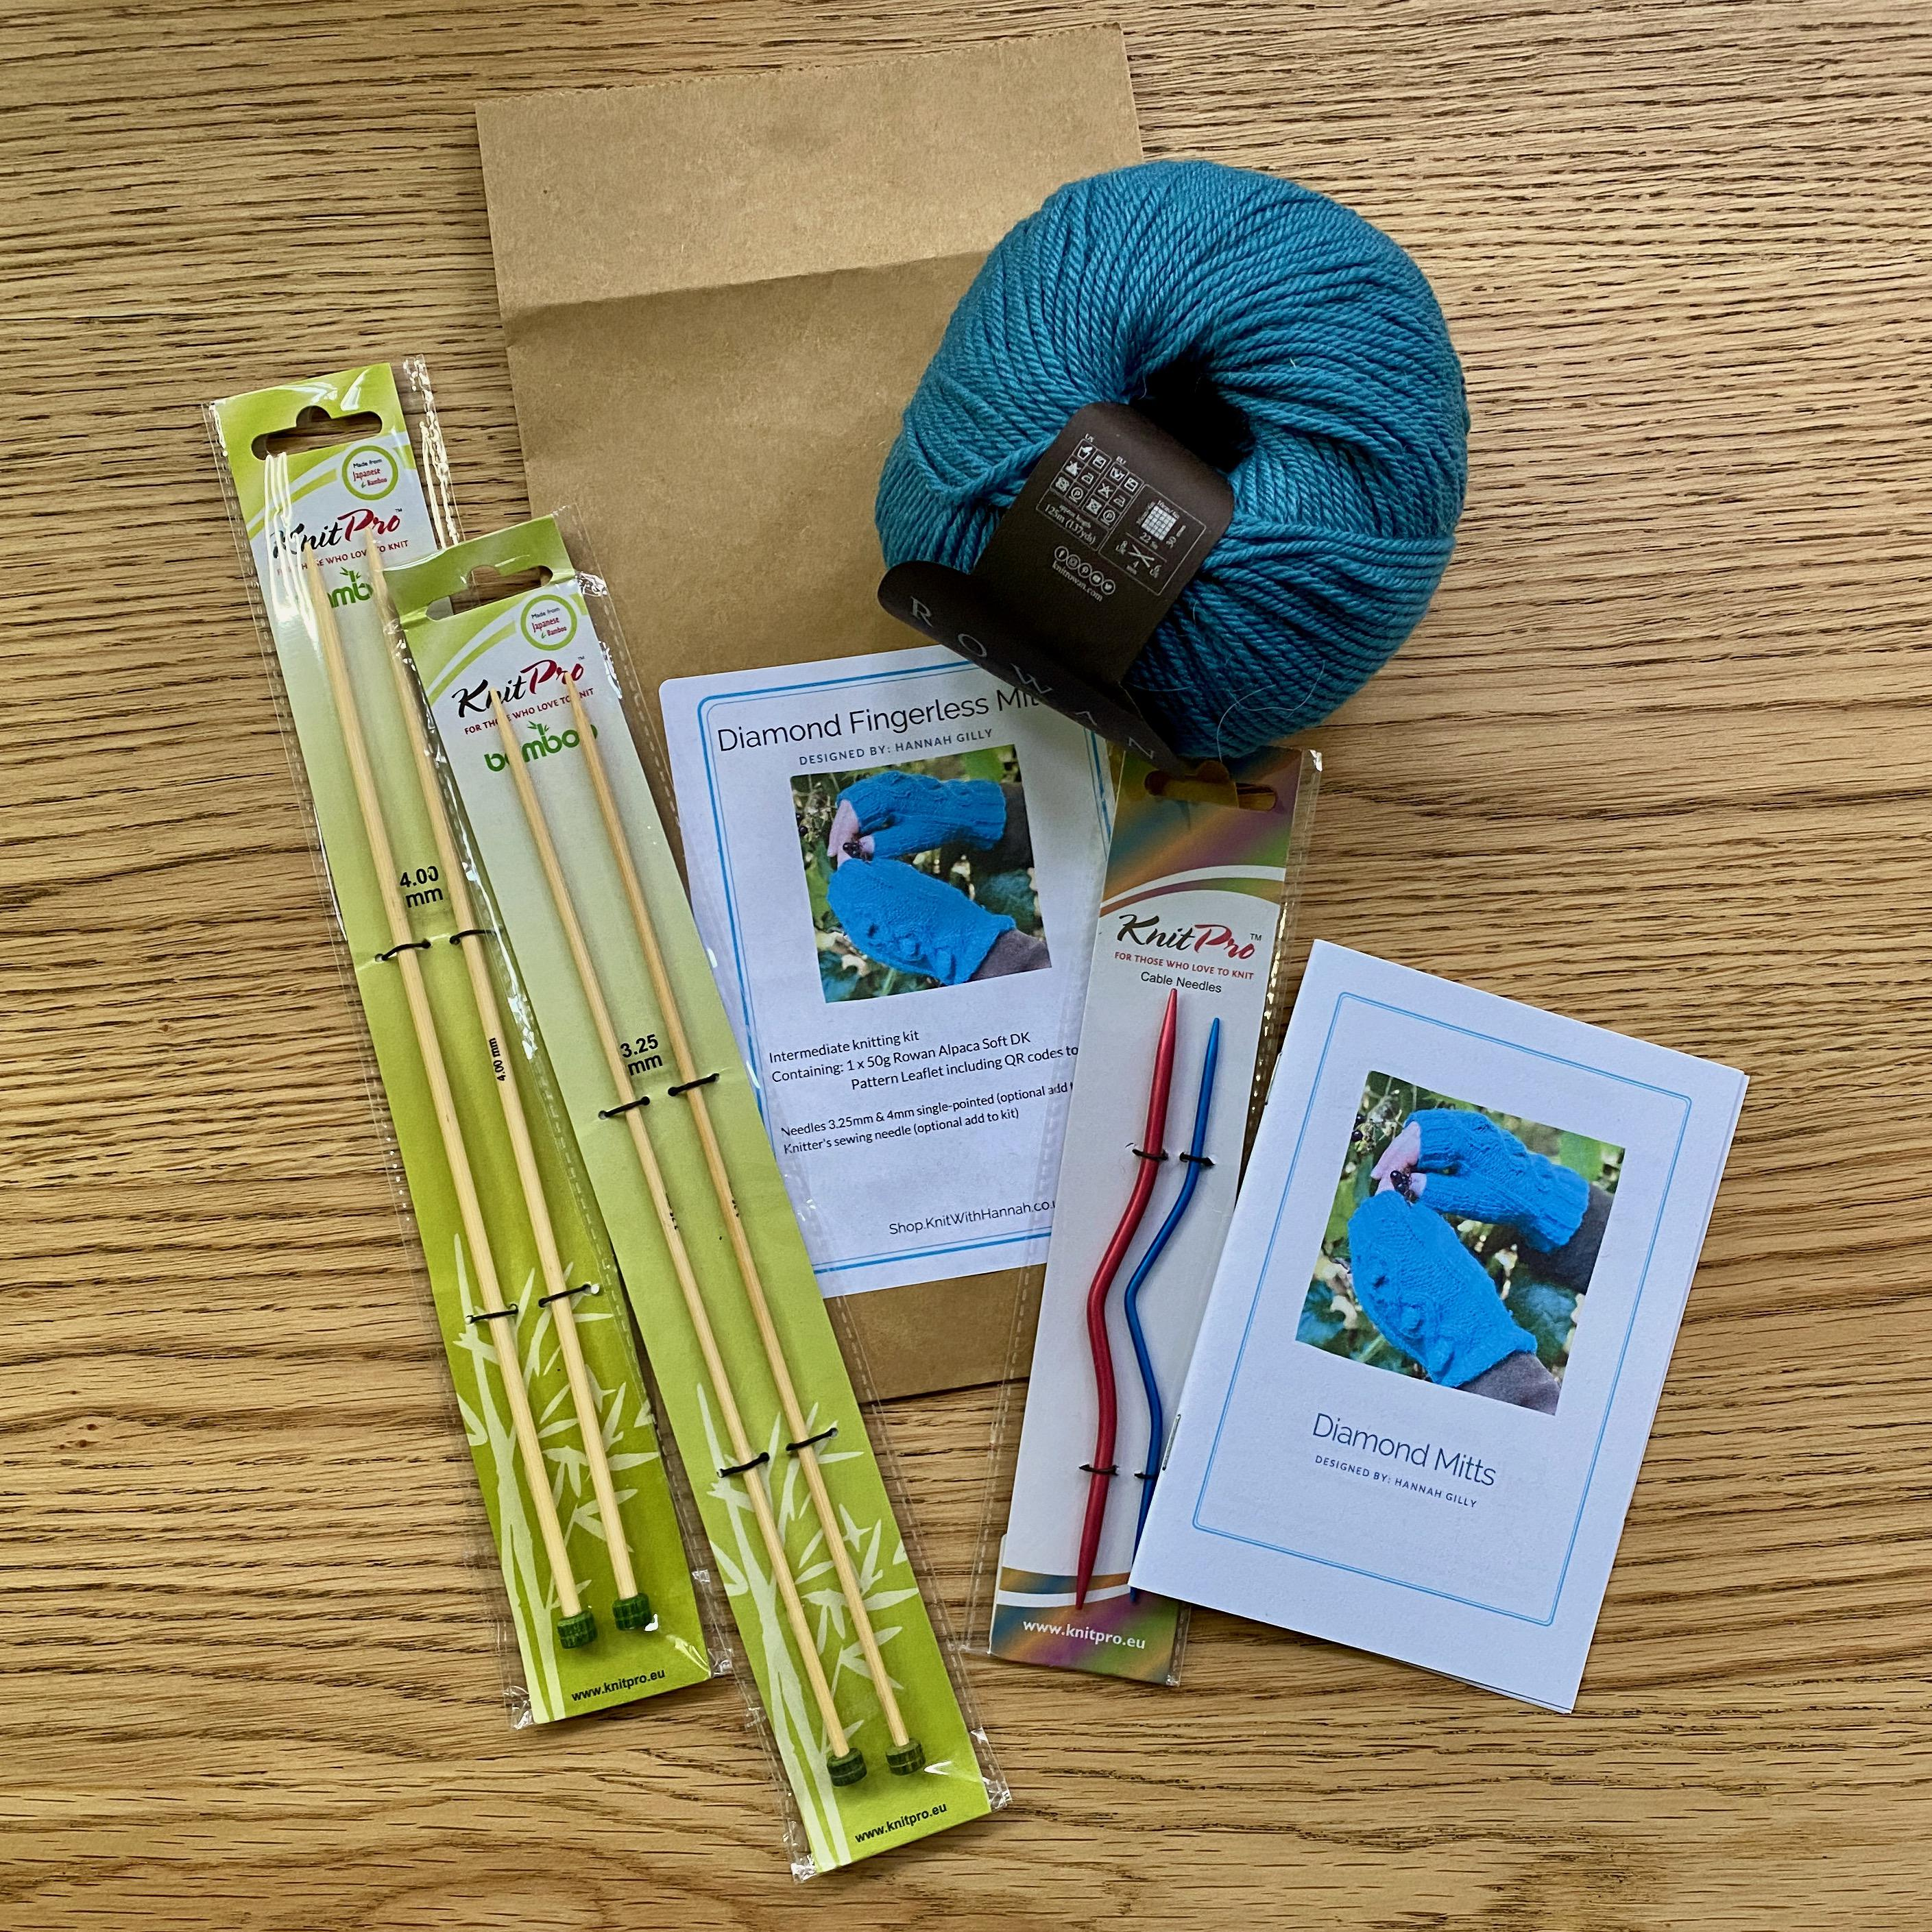 Open Knitting Kit on wooden table showing one ball of blue yarn, knitting pattern and bamboo needles